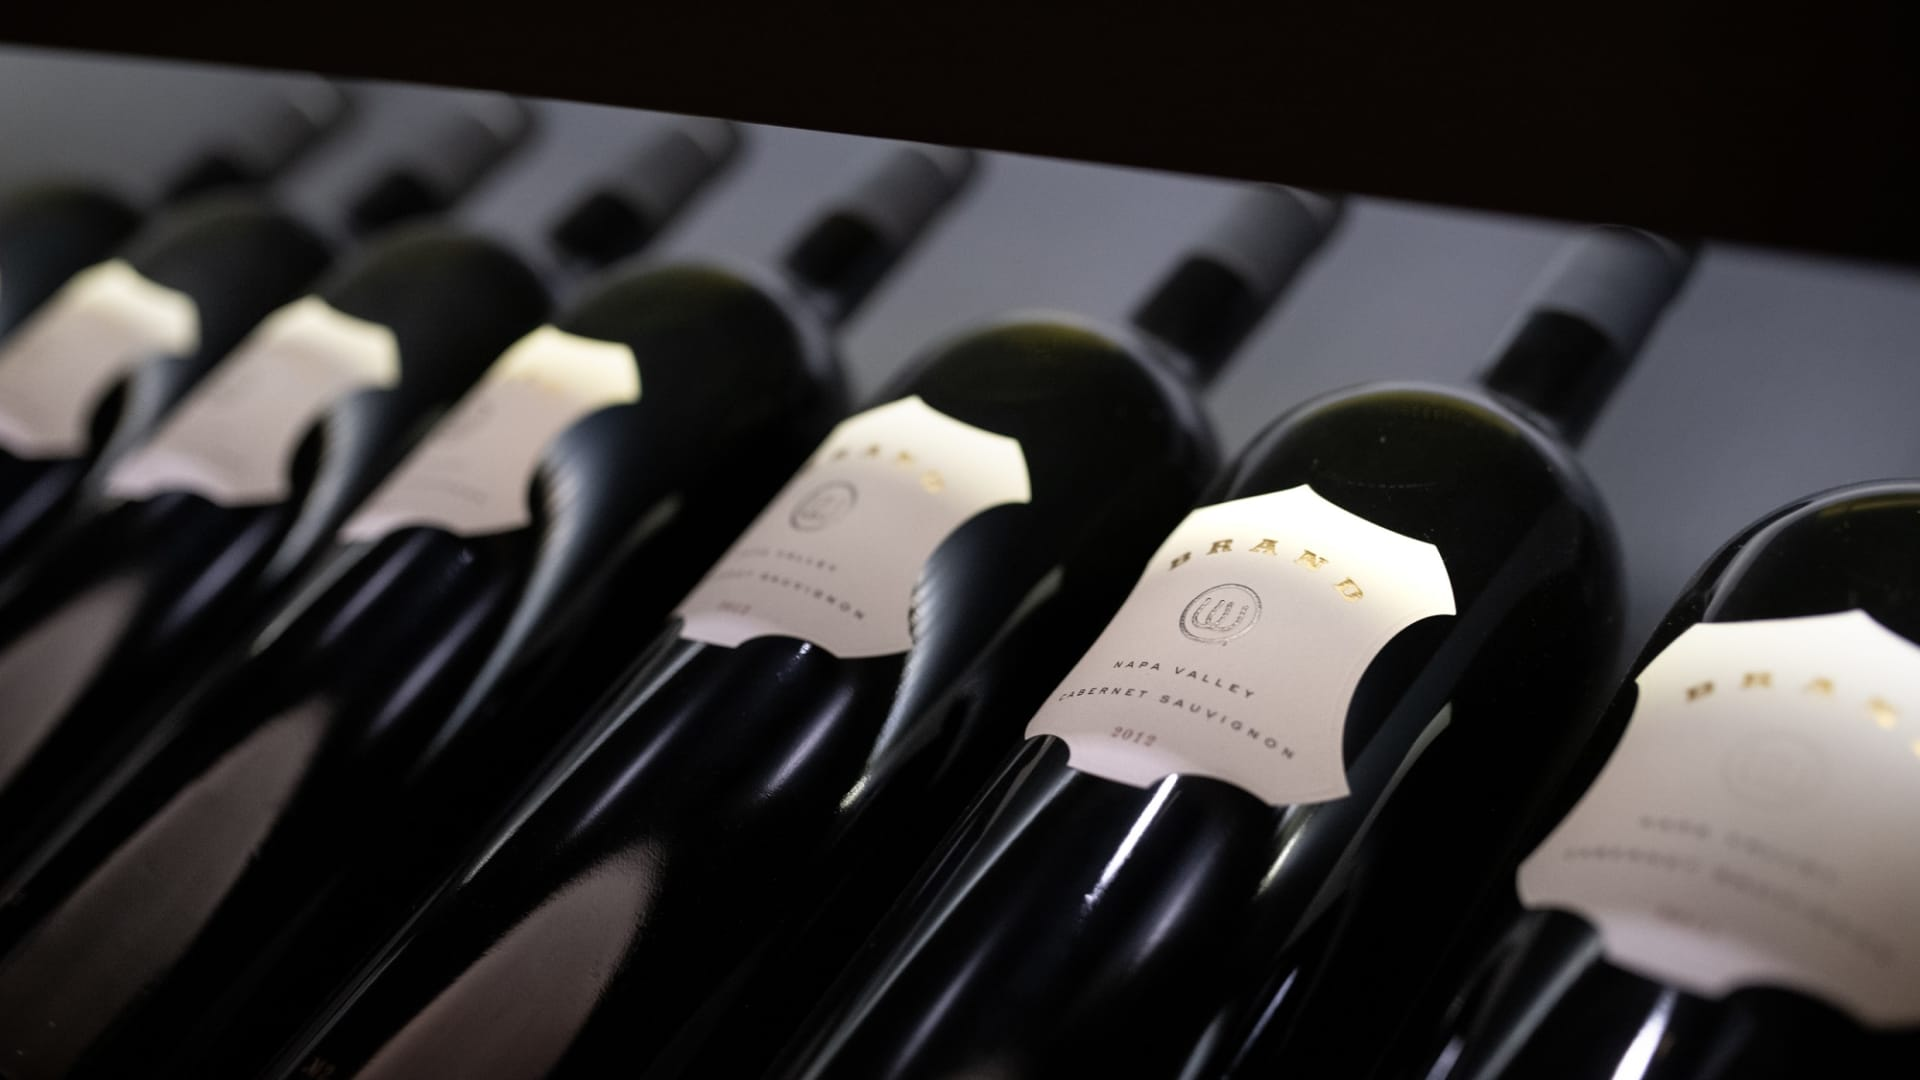 Brand's cabernet sauvignon is the Napa Valley winery's flagship wine.